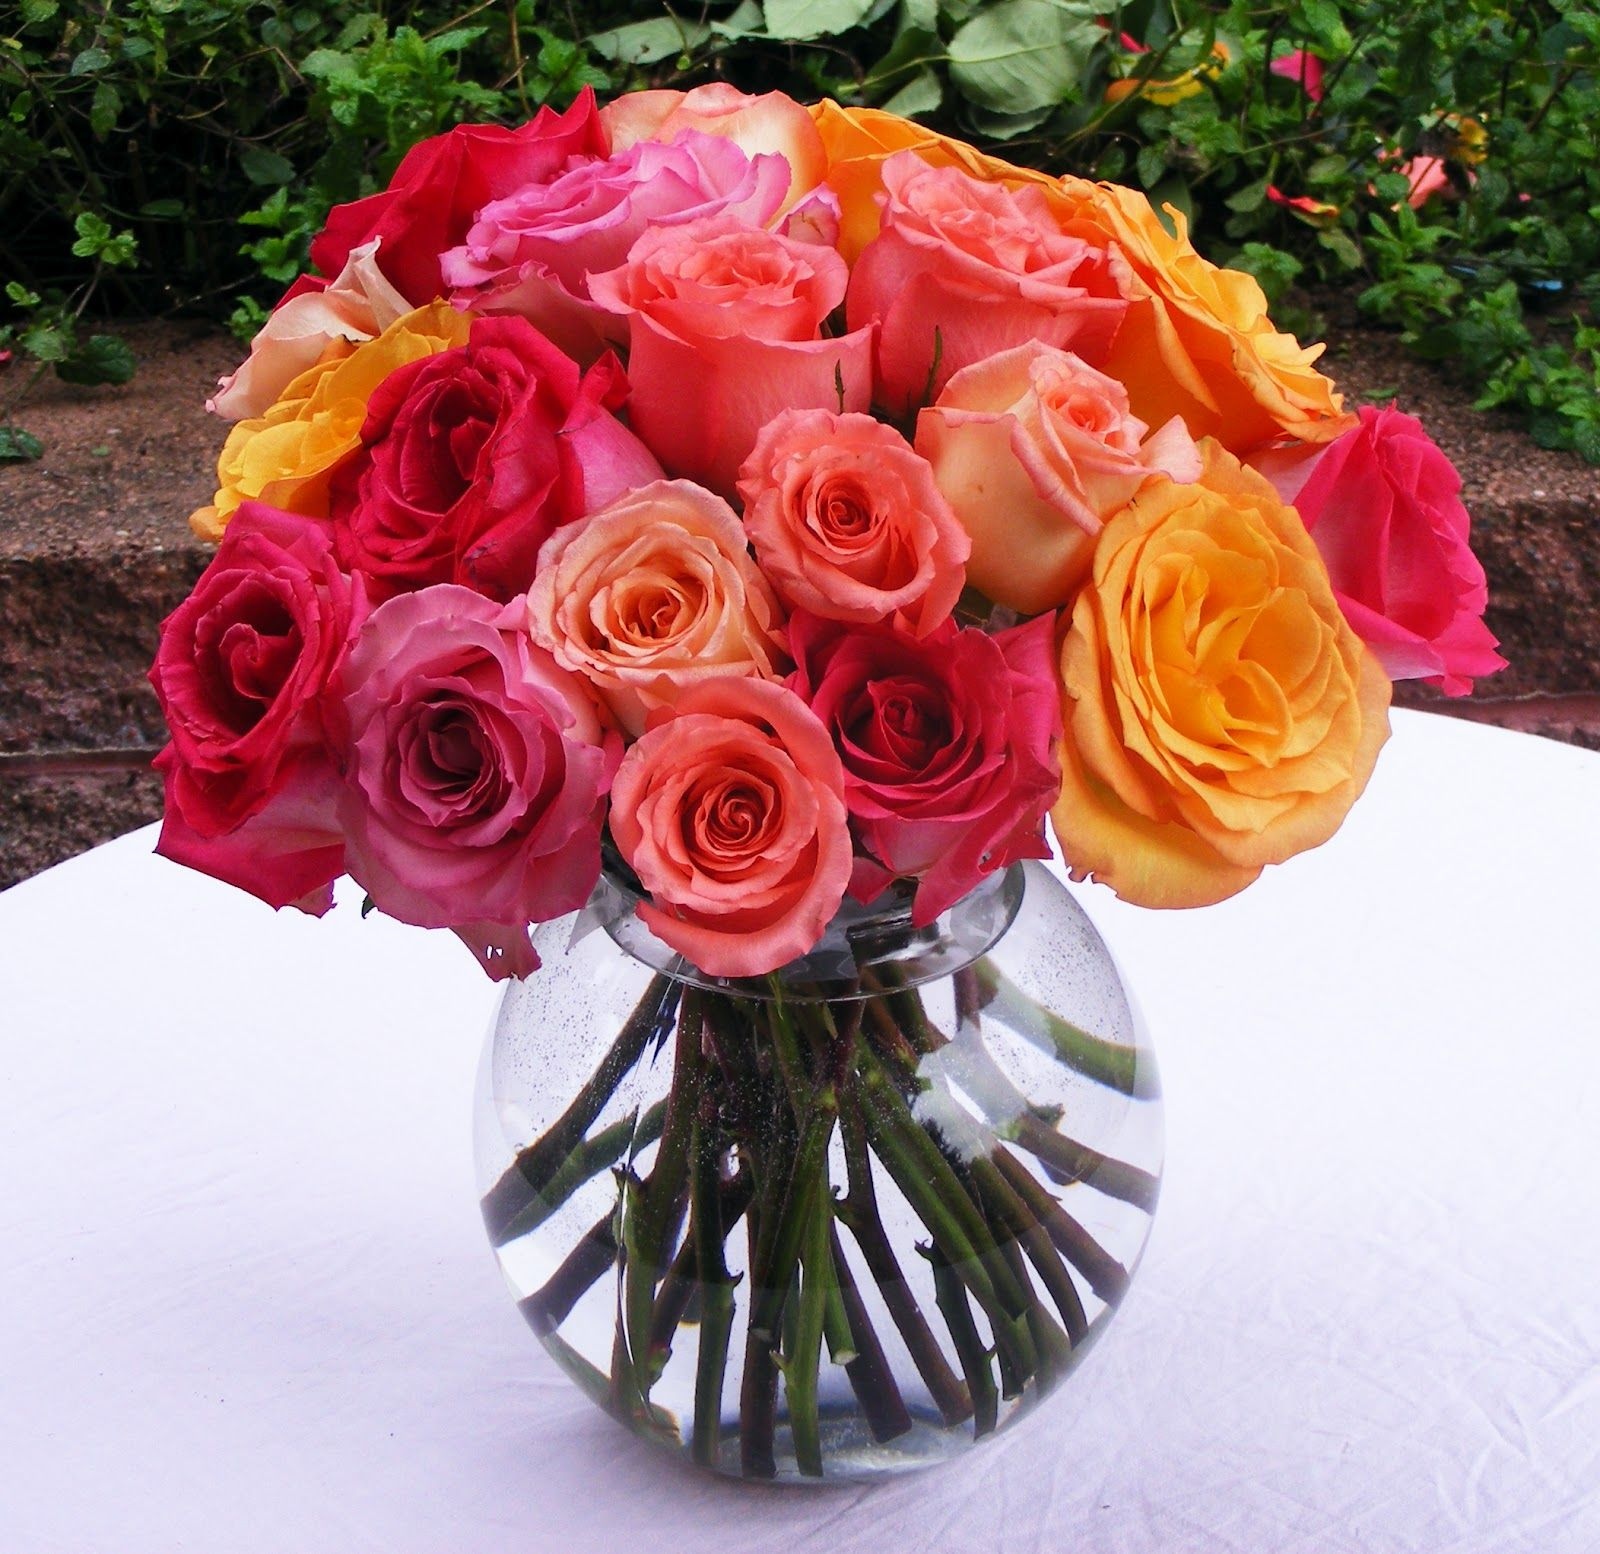 Beautiful Flower Arrangements For Weddings: Working For Carrots: How To Make A Rose Bouquet